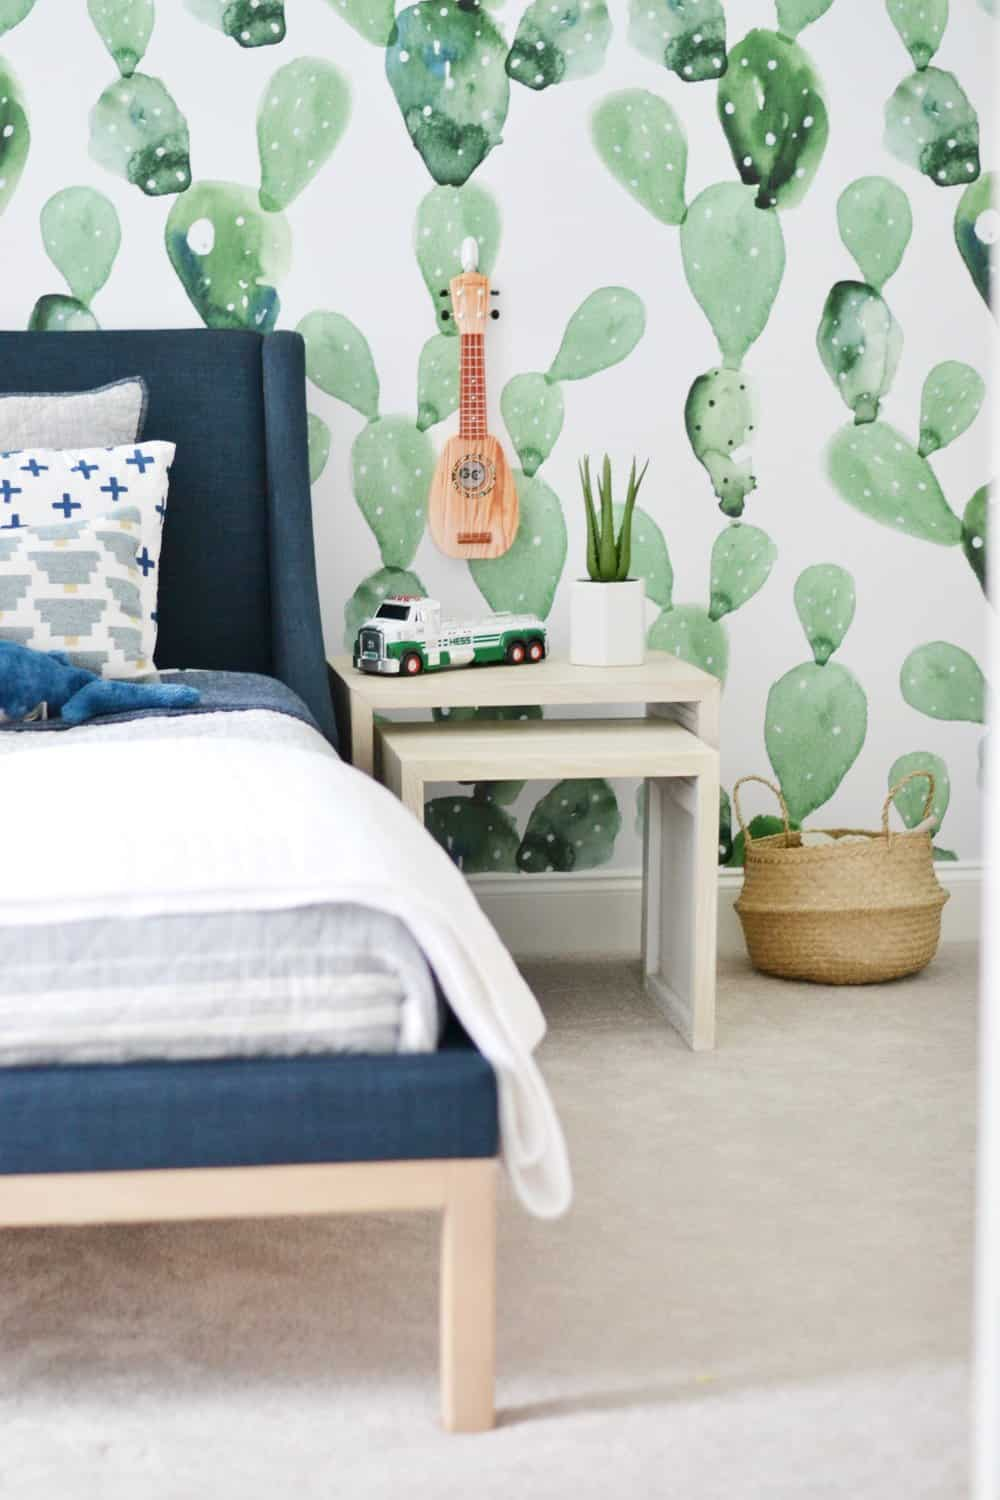 cactus removable wallpaper with a navy blue bed in bedroom